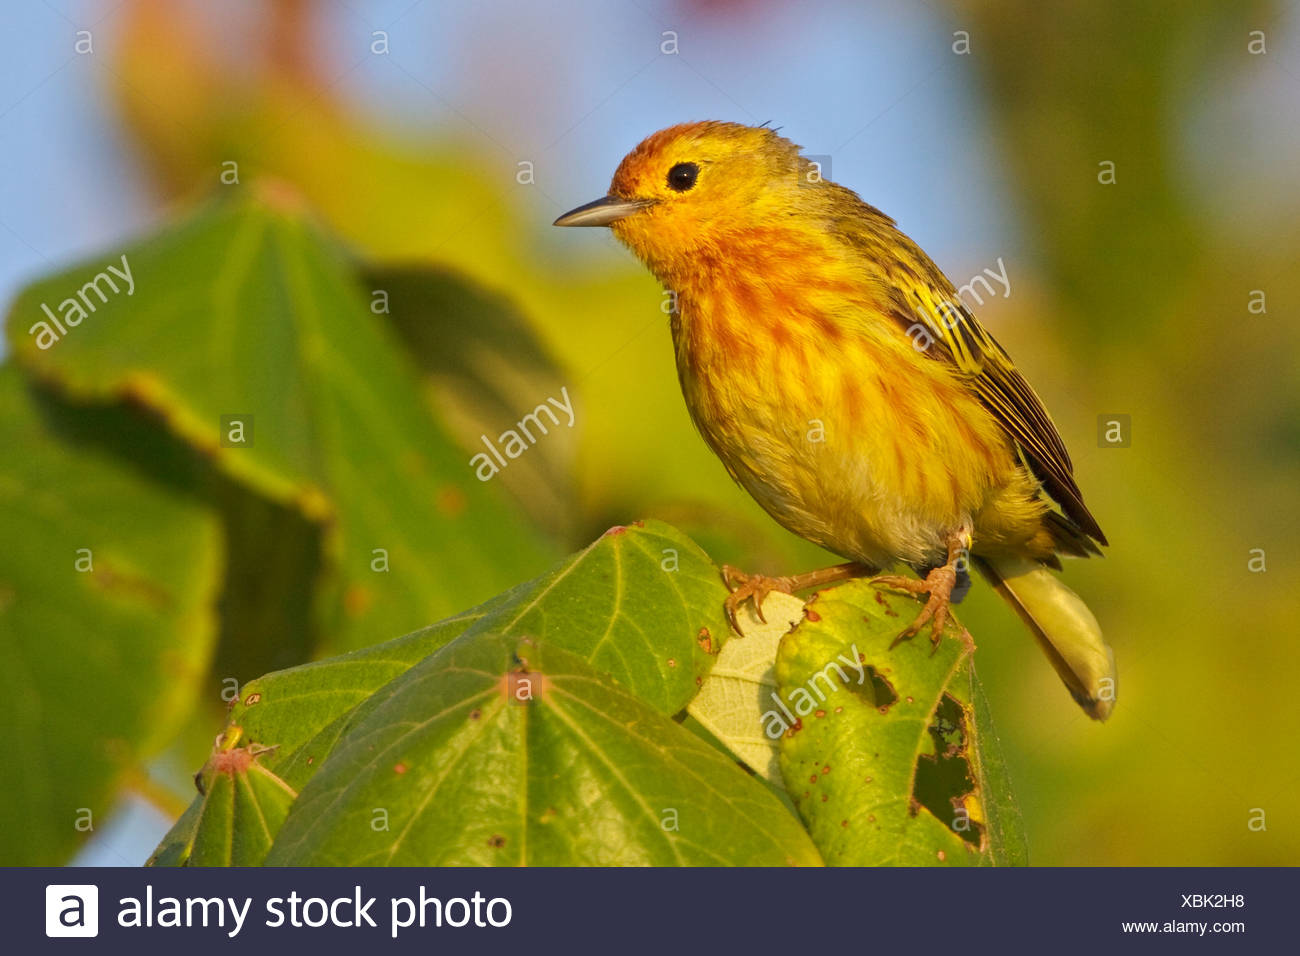 Mangrove Warbler (Dendroica petechia) perched on a branch near the coast of Ecuador. - Stock Image